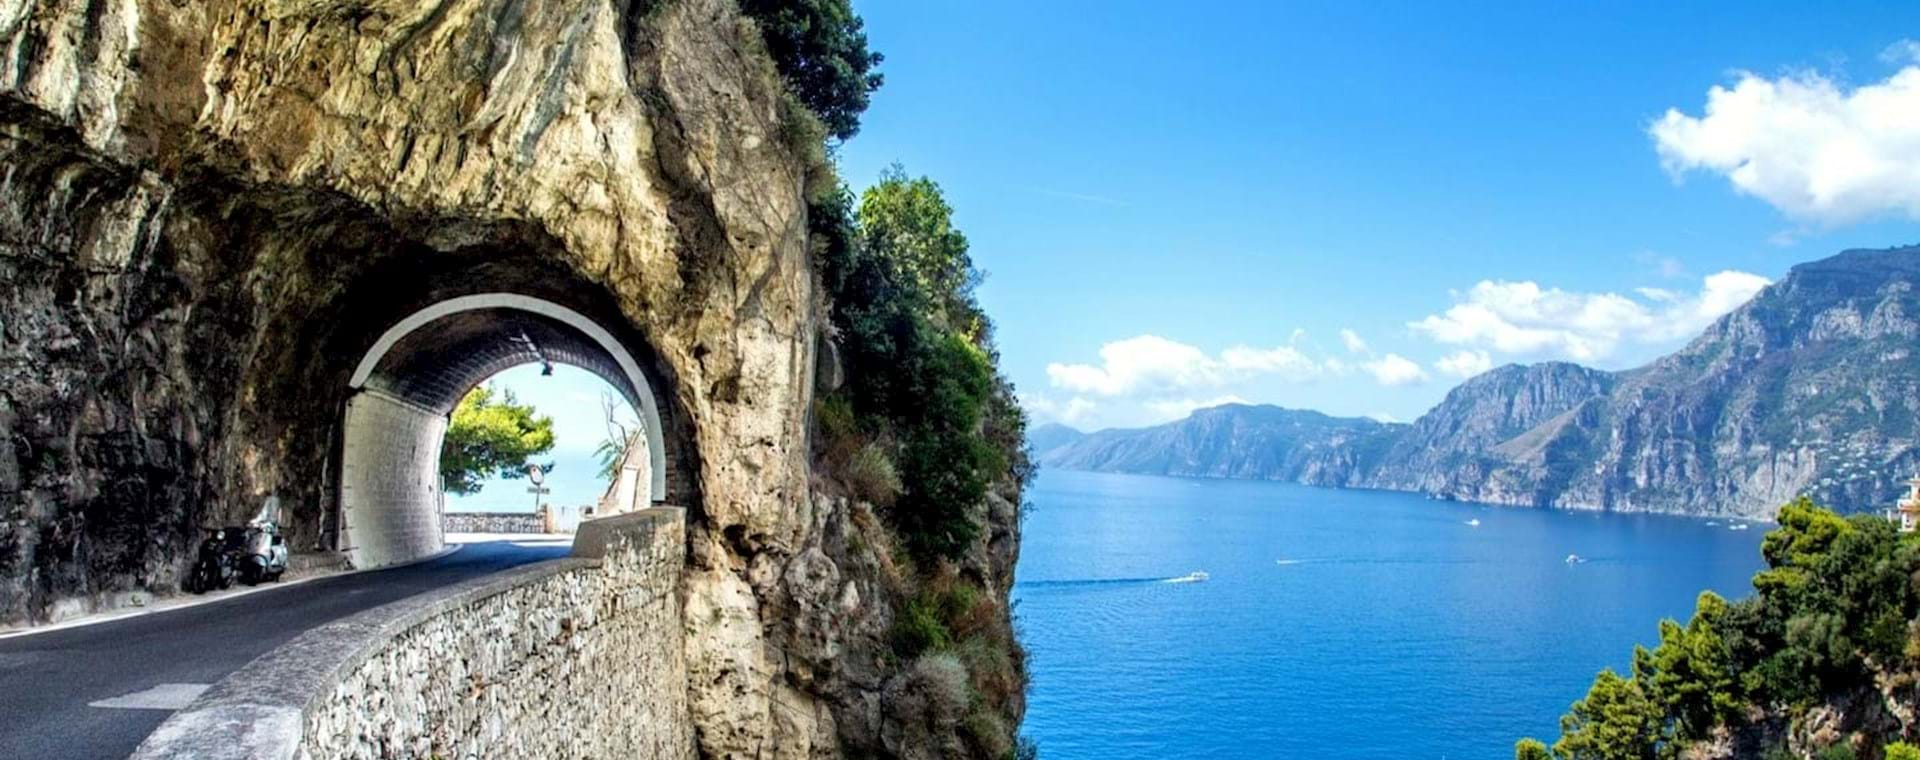 Day Trip: VIP Pompeii & Sorrento Small Group Tour from Rome